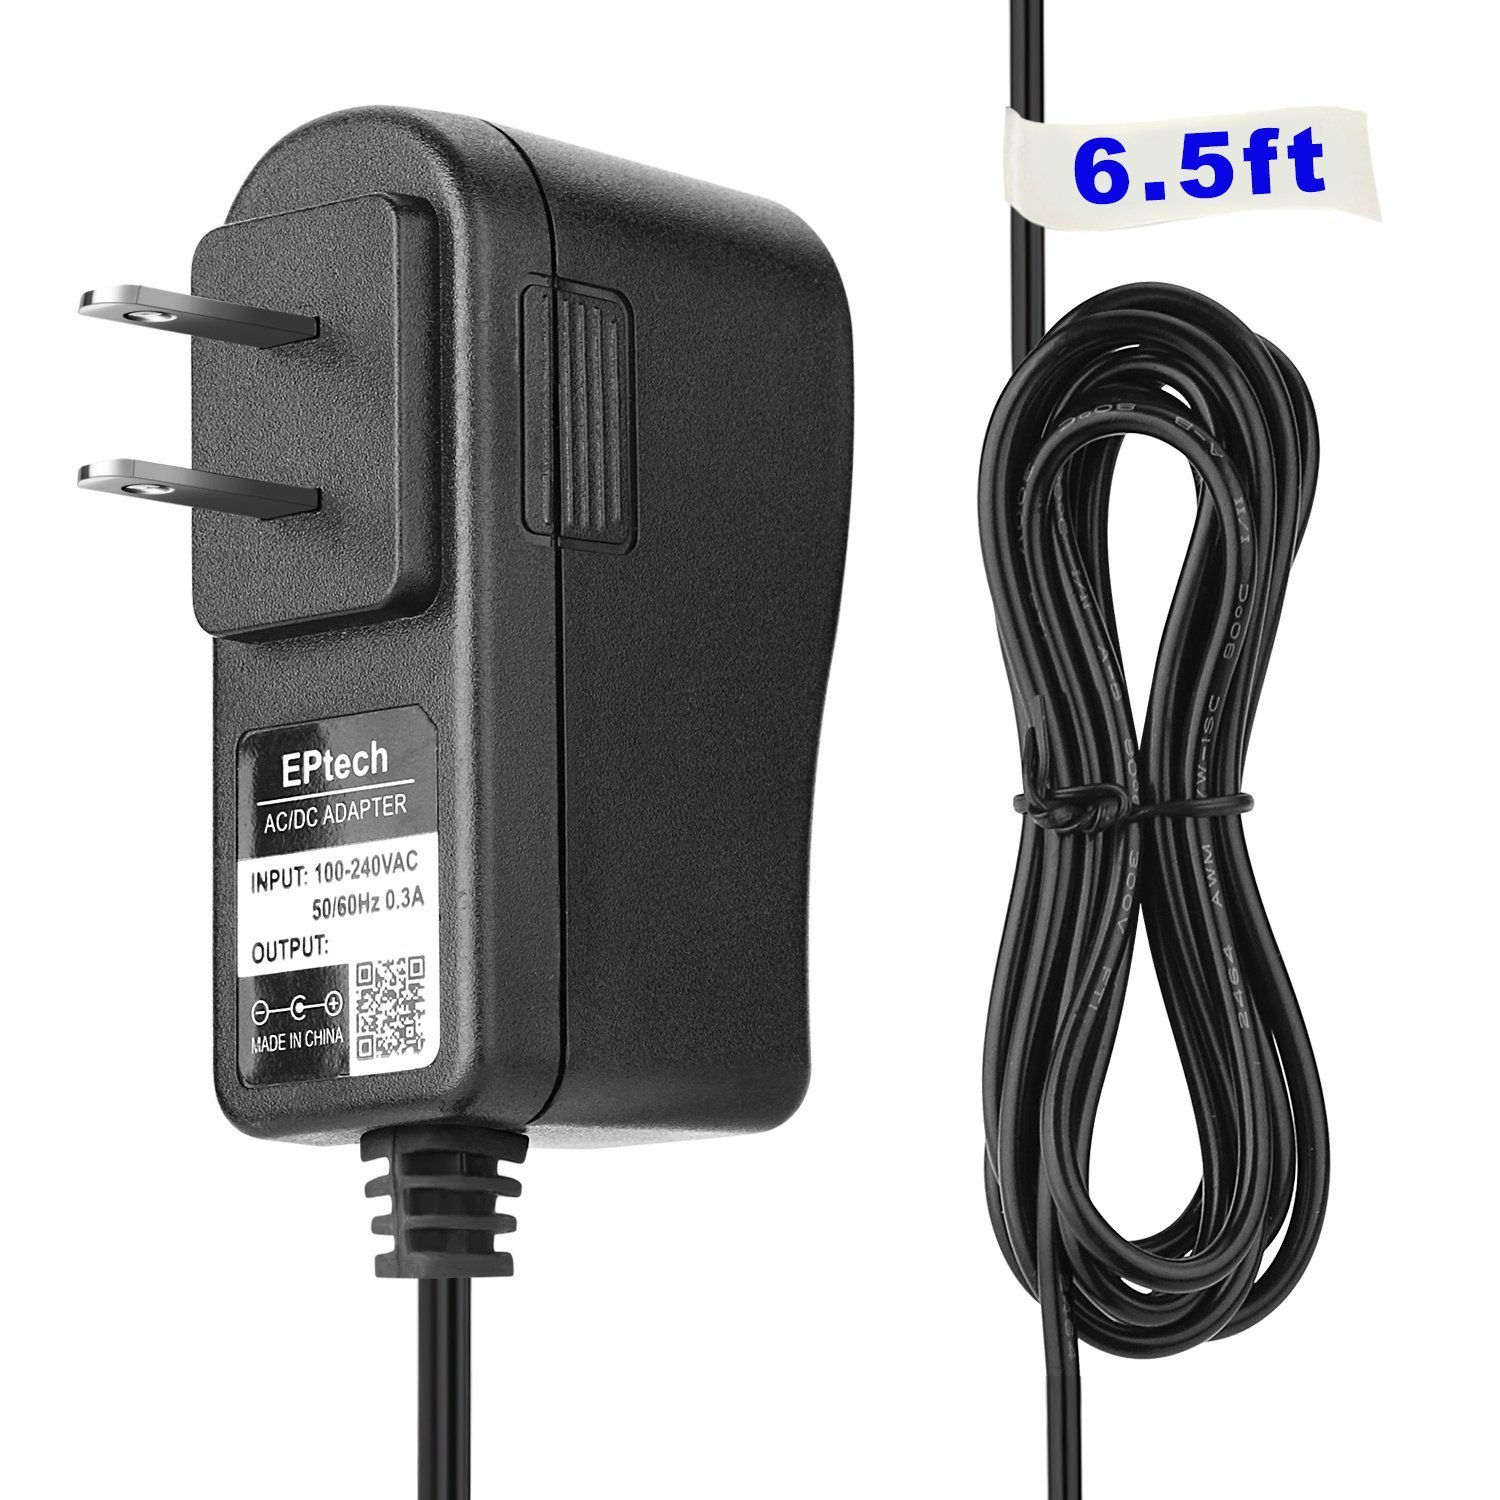 AC/DC Adapter For CRAIG Electronics CLP288 9'' inch, CLP285 10'', CLP289 10.1'' High Definition DUAL CORE Android slimbook Netbook basic laptop Power Supply Cord